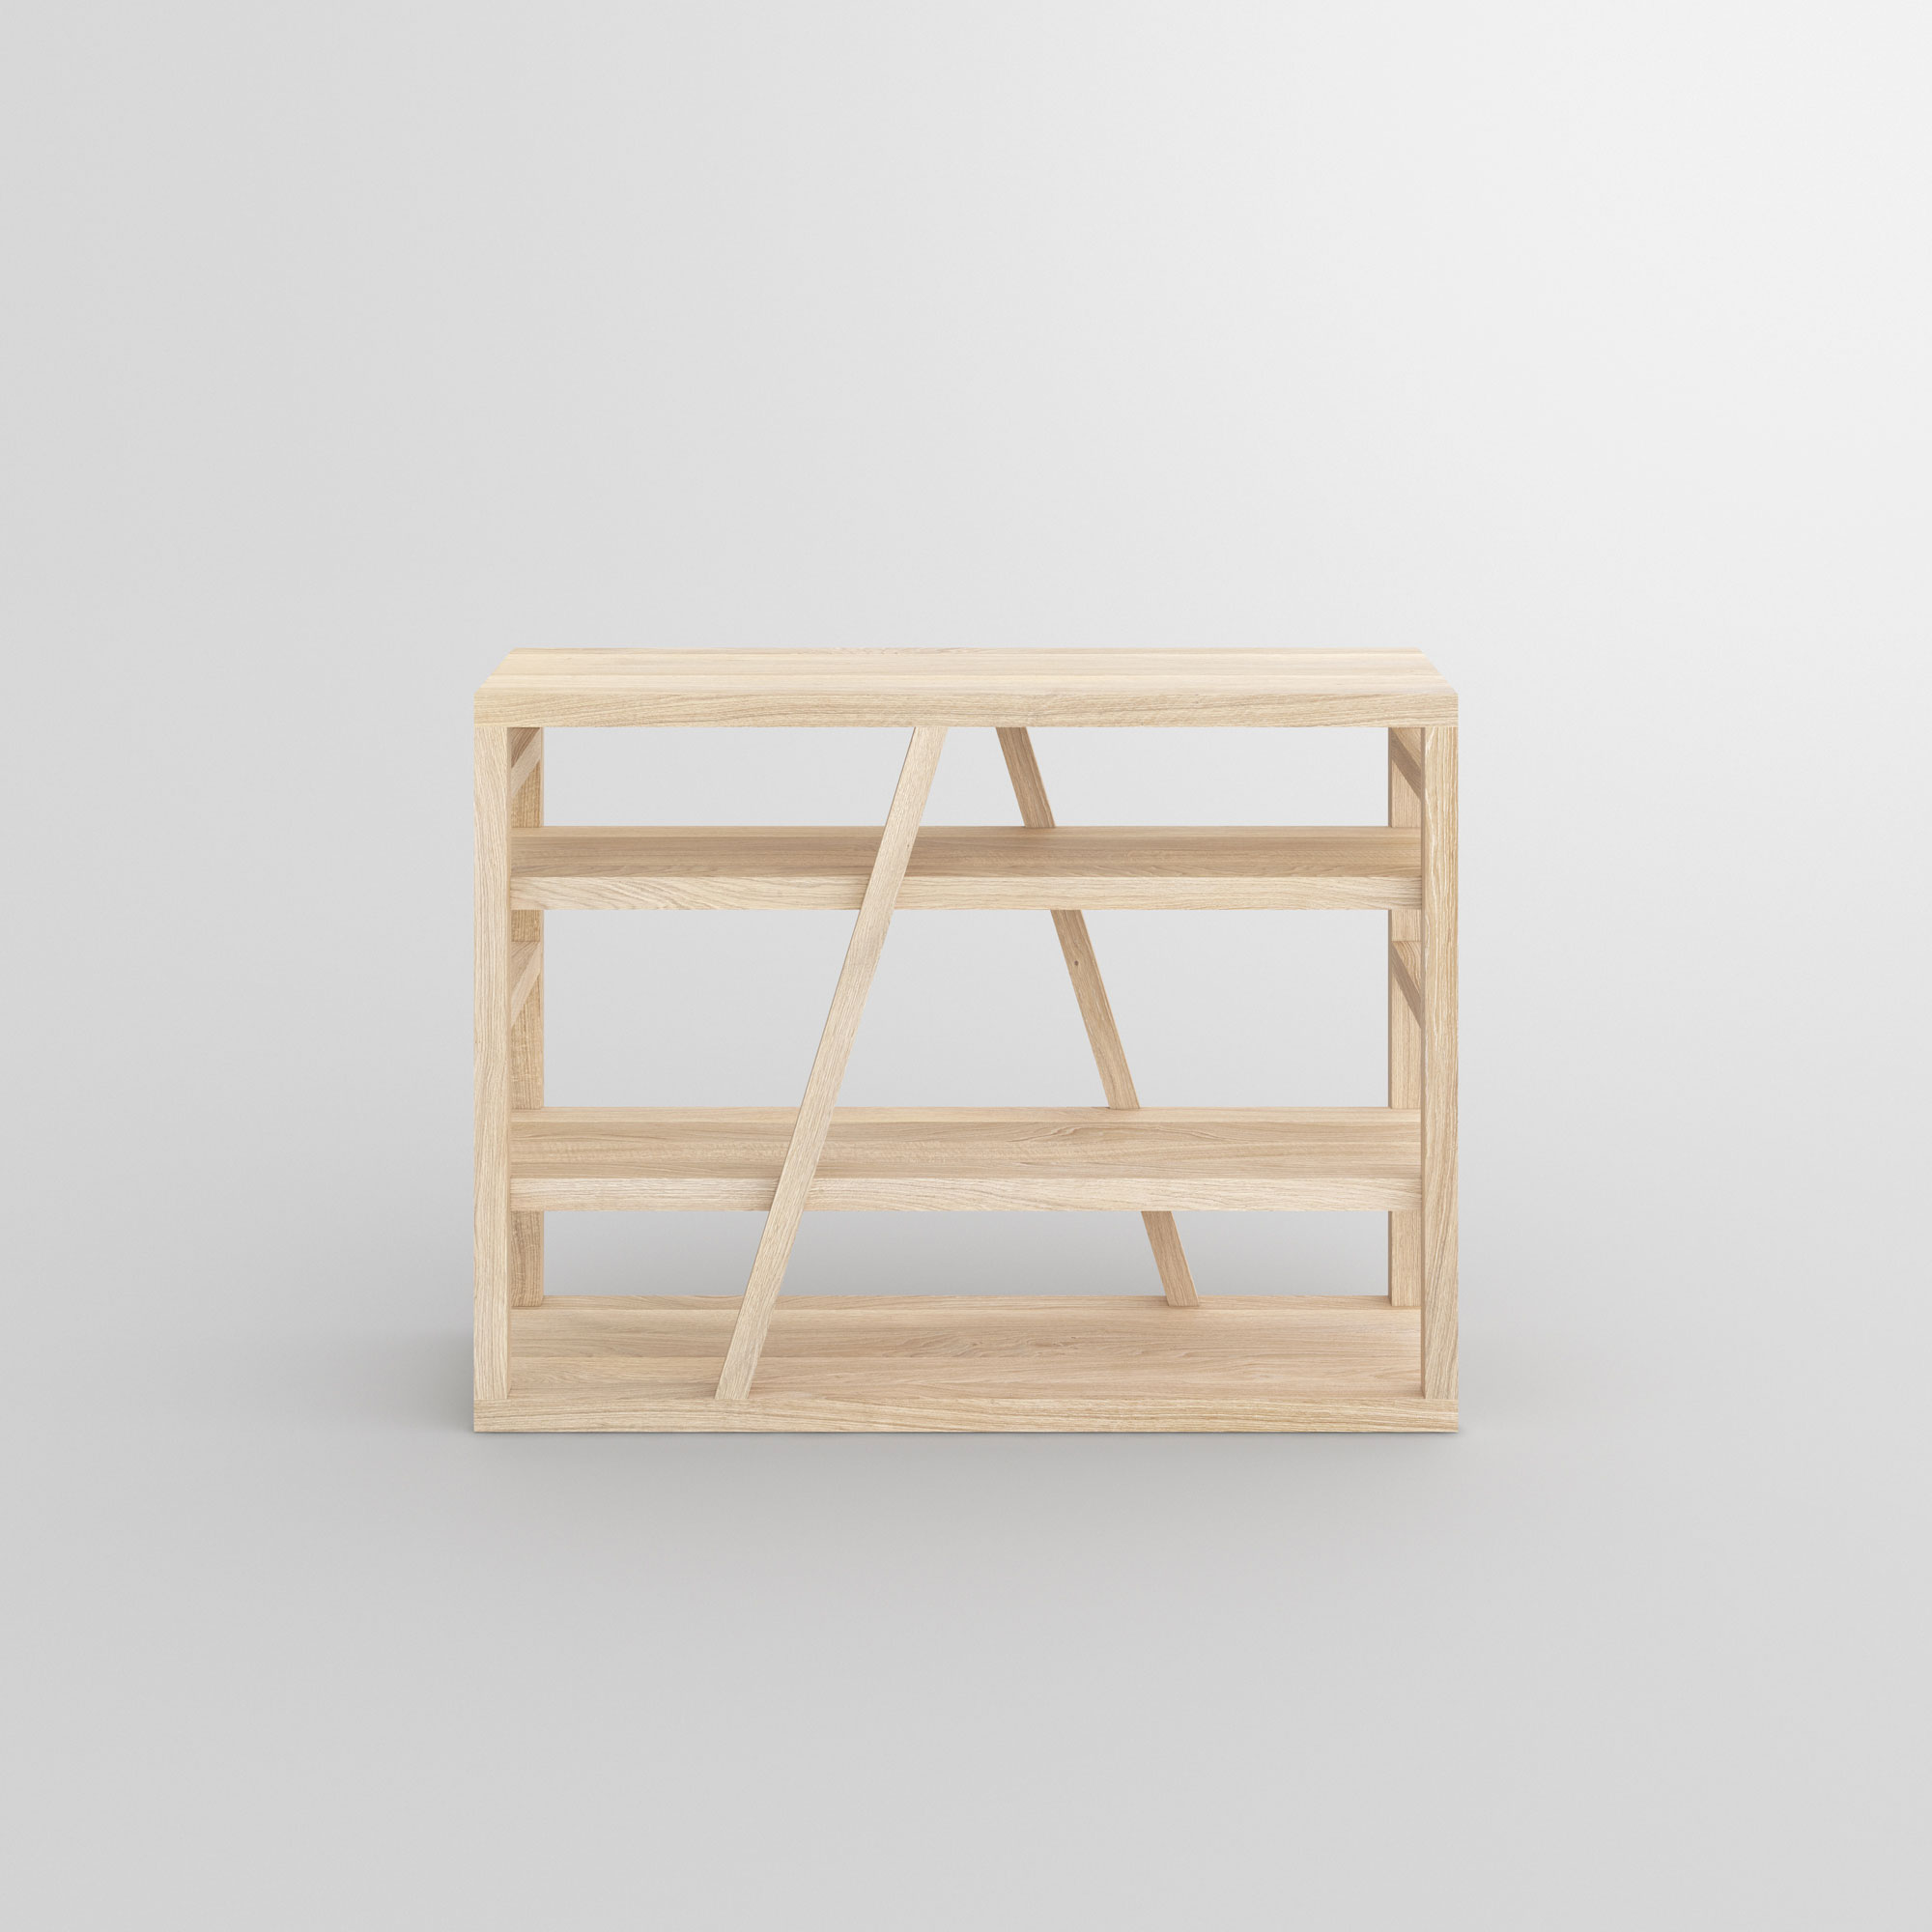 Wooden Shelf FACHWERK cam2 custom made in solid wood by vitamin design